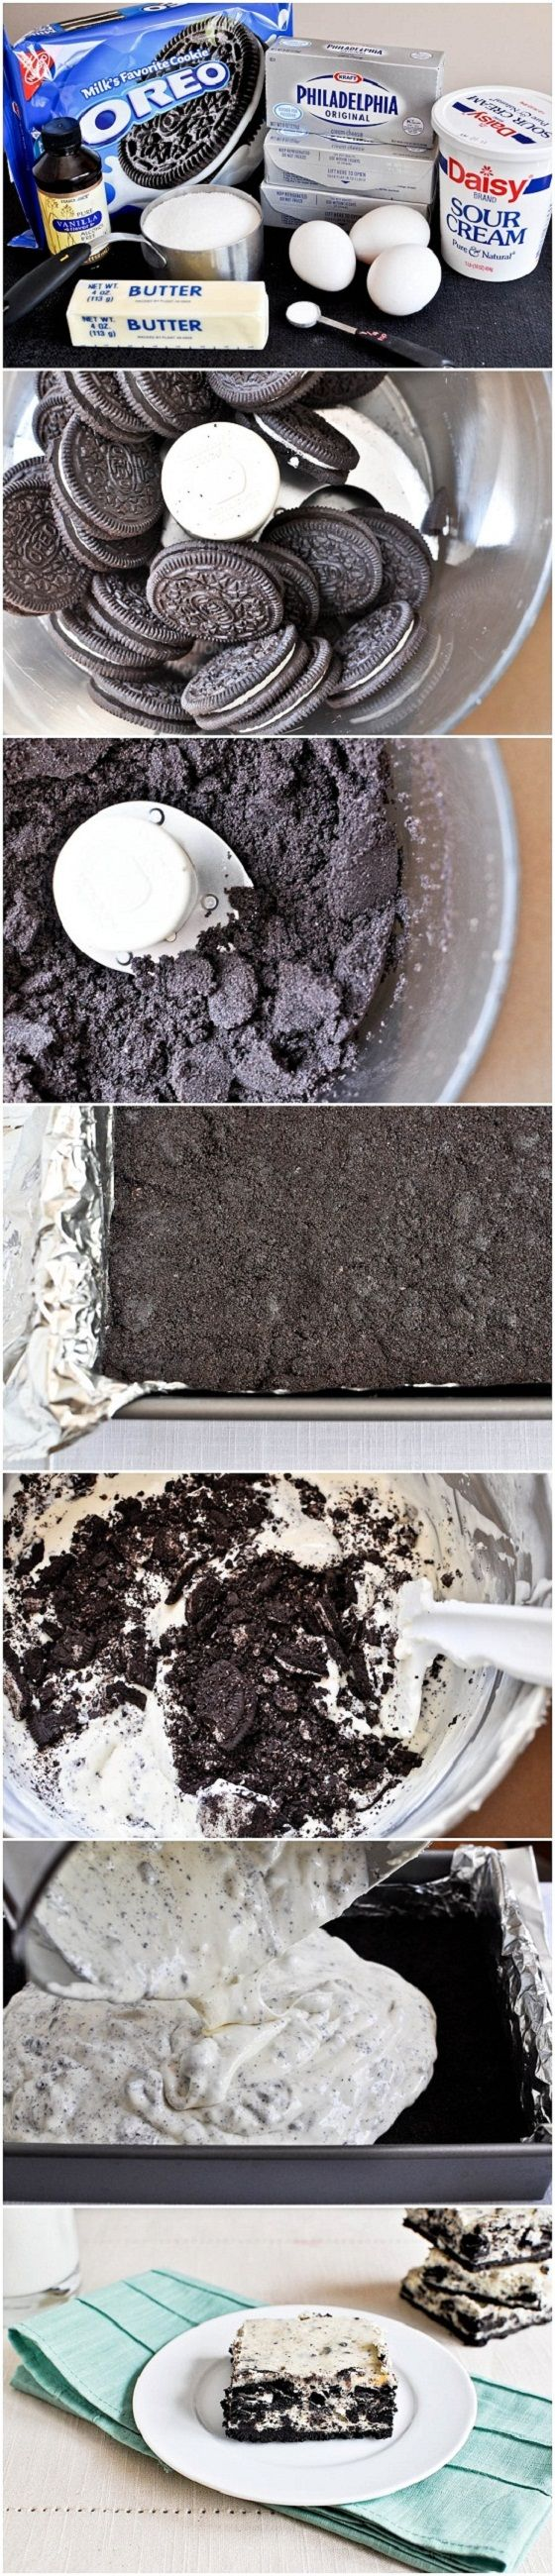 Cookies and Cream Cheesecake Bars | Recipe | Oreo cheesecake, Dairy ...